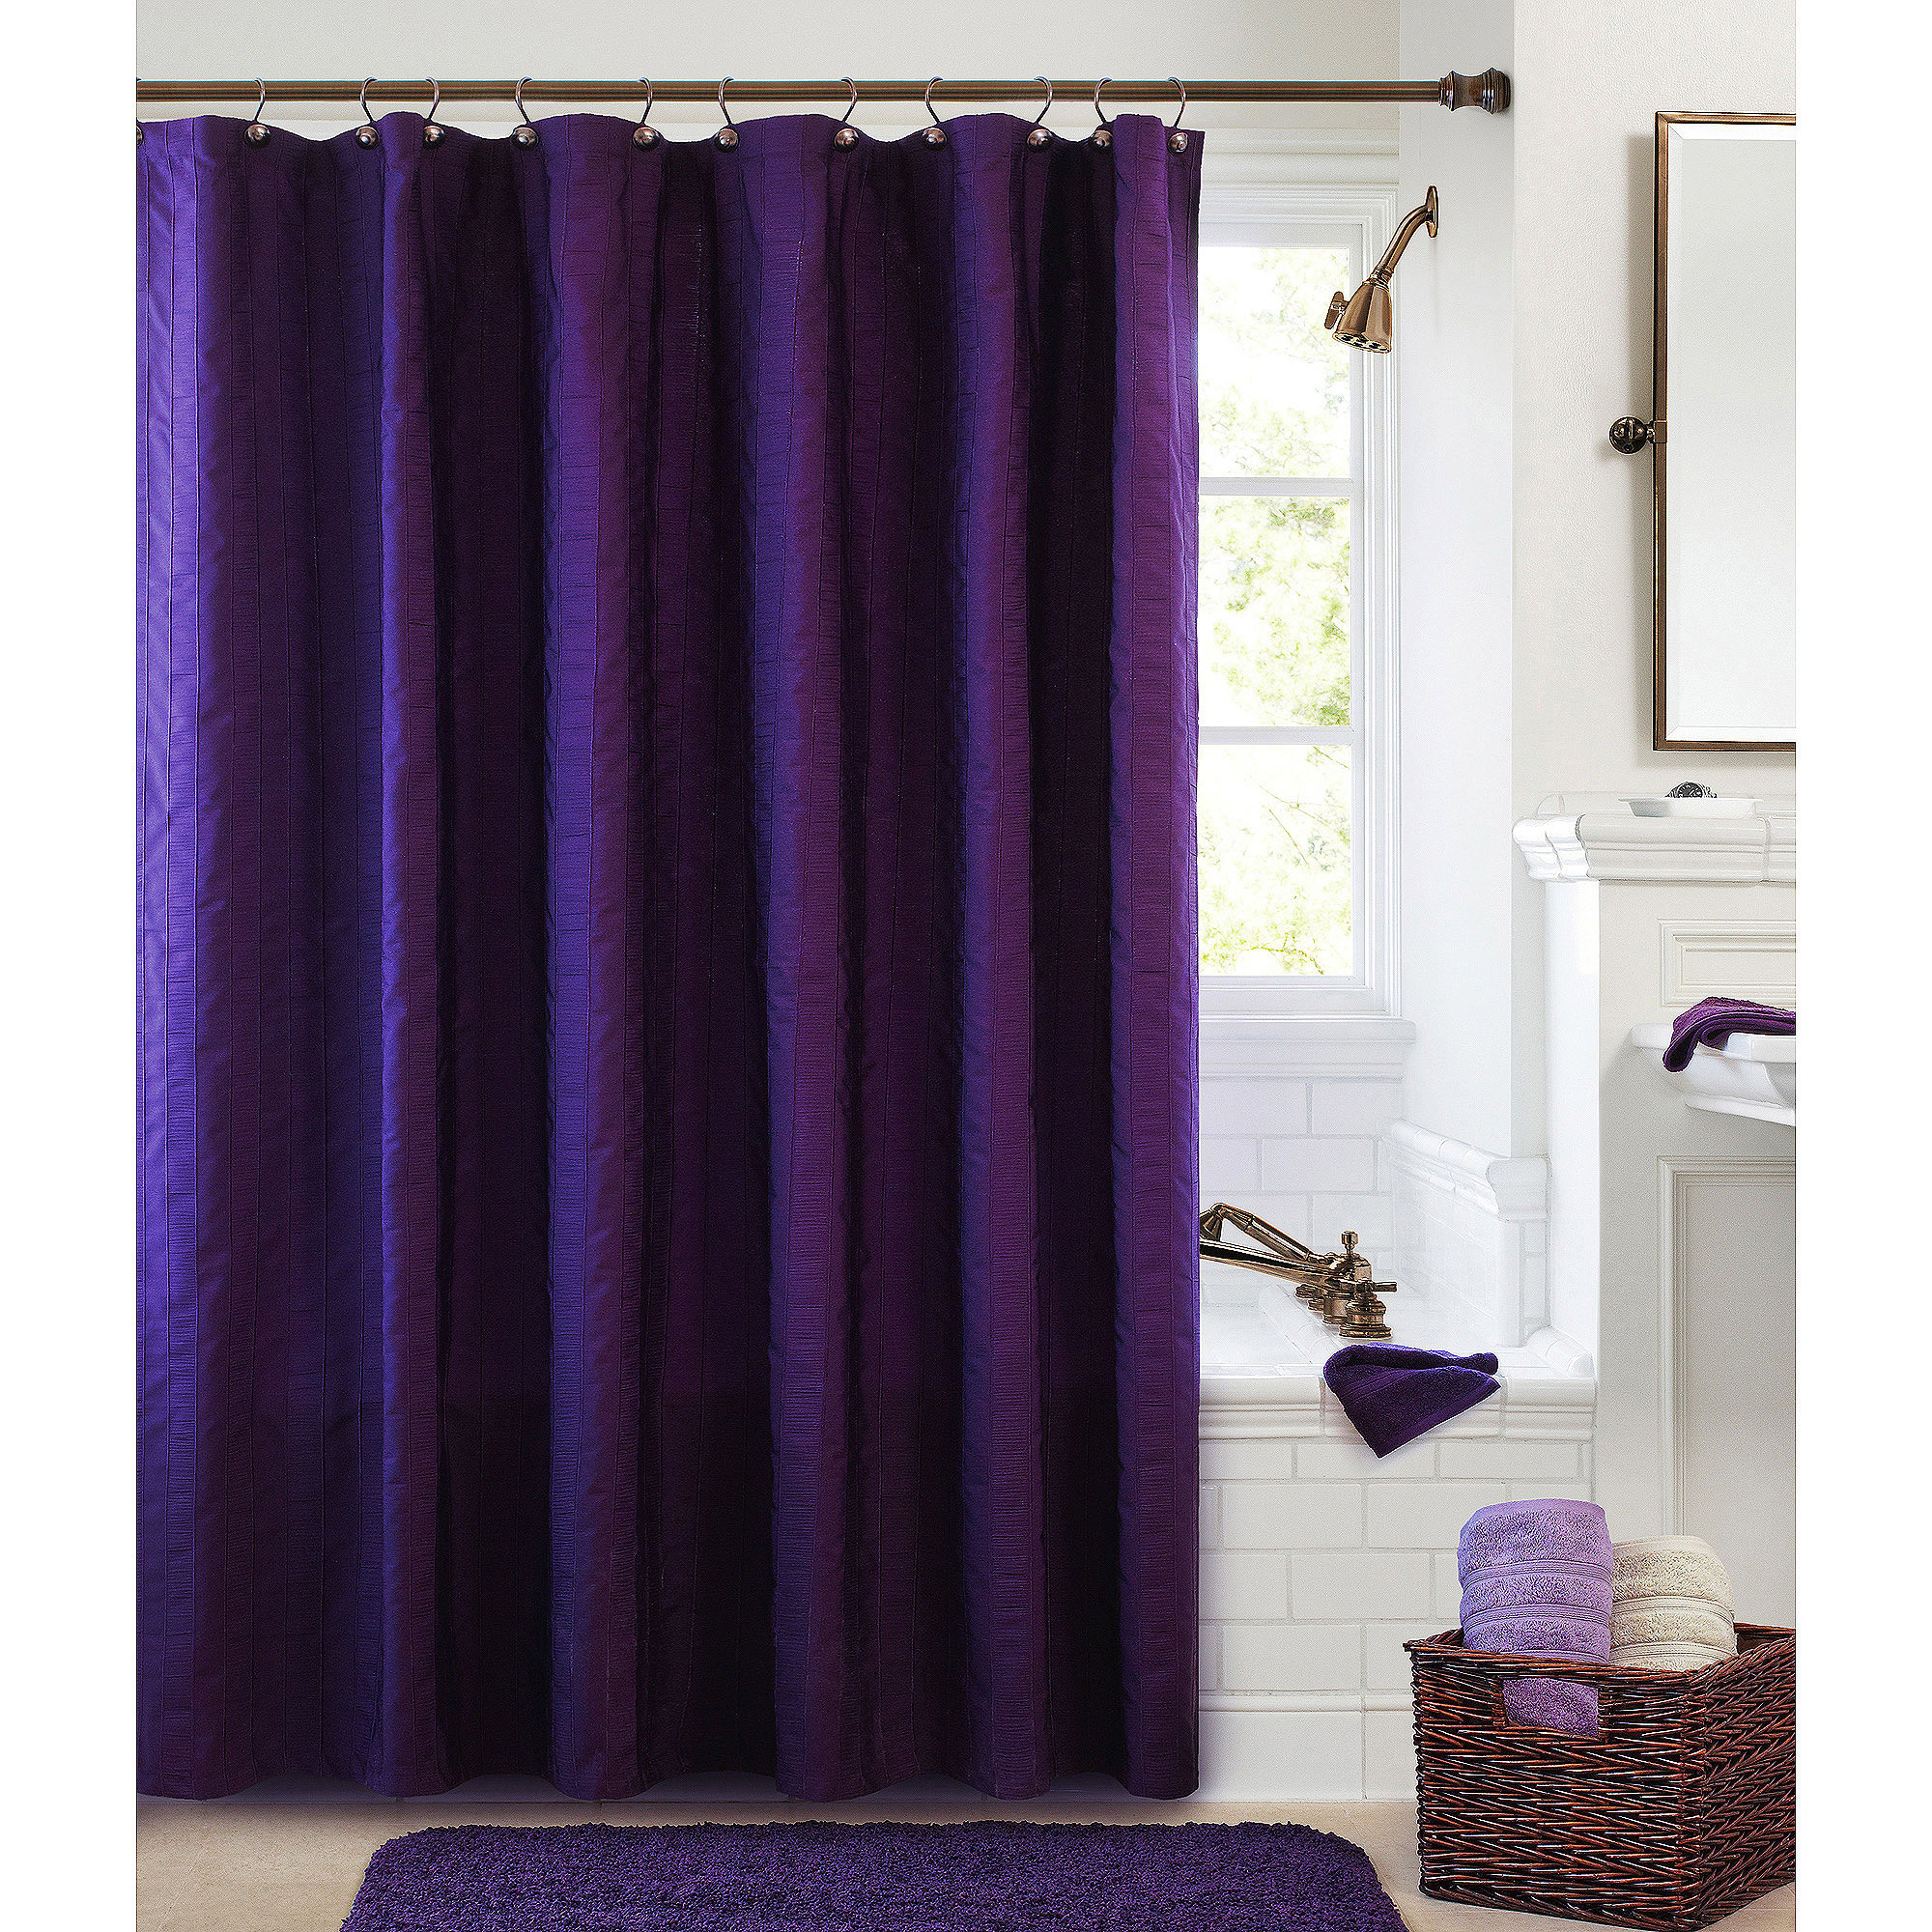 Best ideas about Bathroom Sets With Shower Curtain . Save or Pin Fresh Bathroom Bathroom sets with shower curtain and Now.